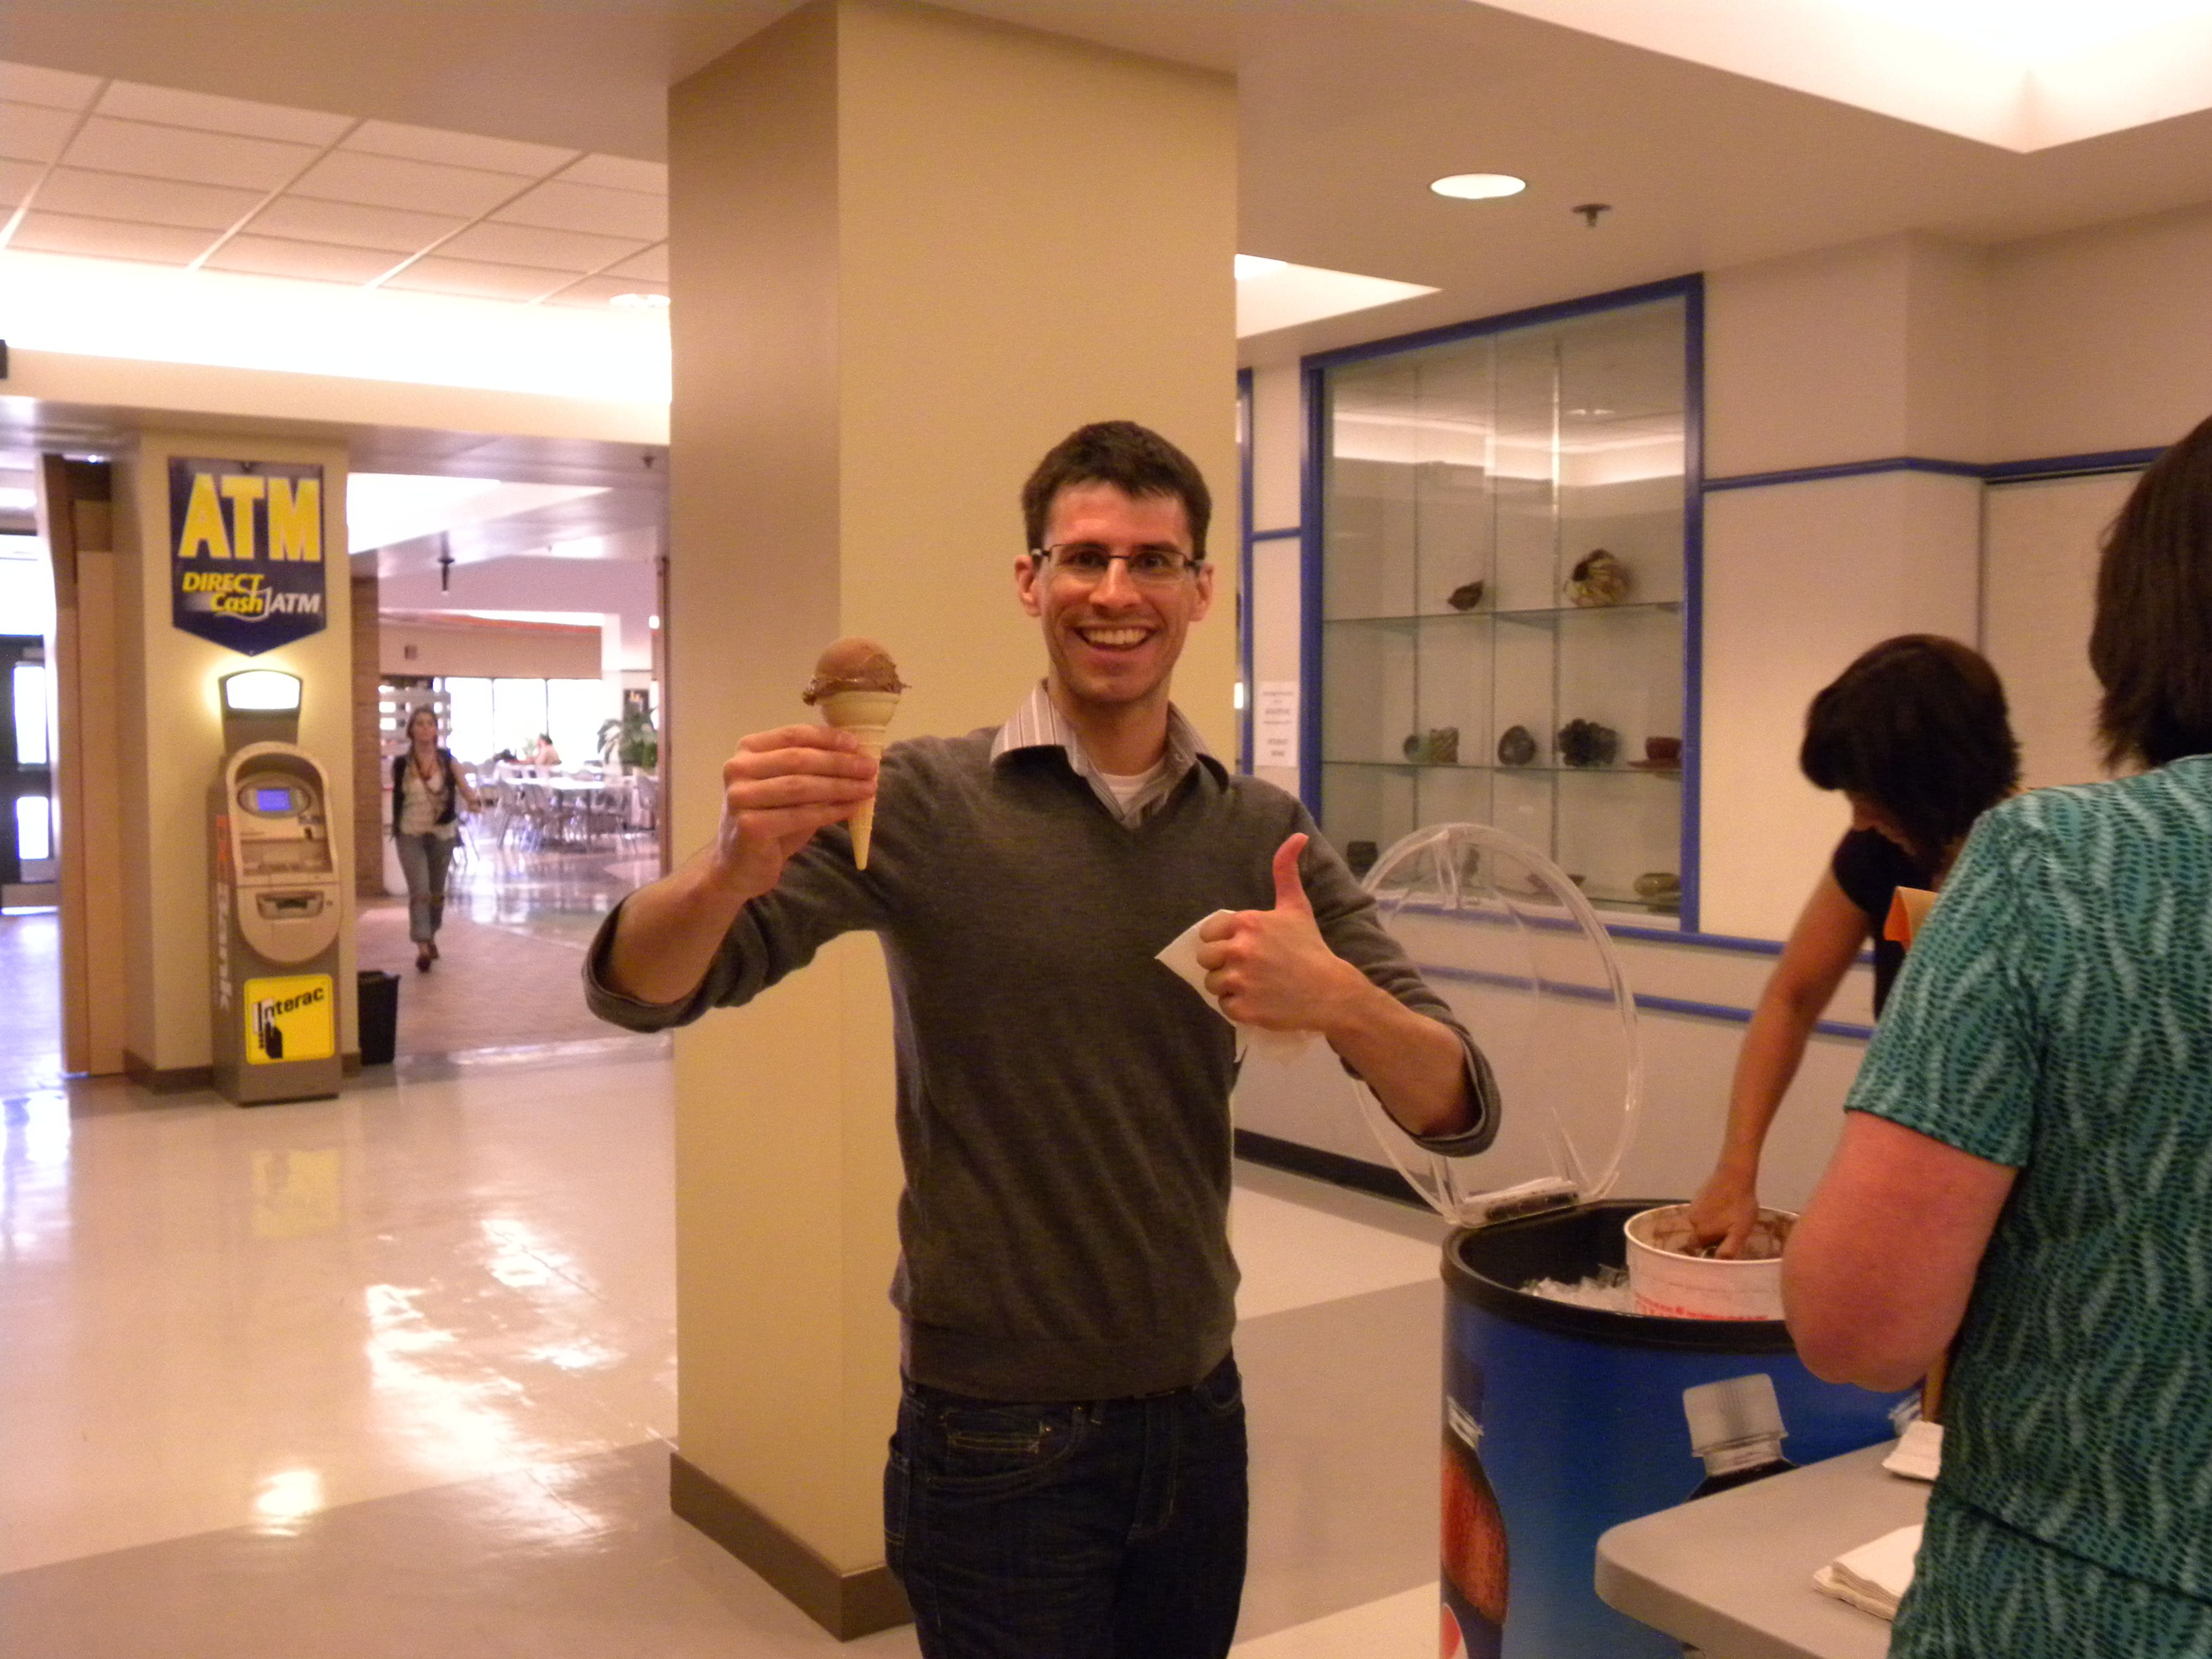 Free ice cream from Campus Life makes for a happy day!